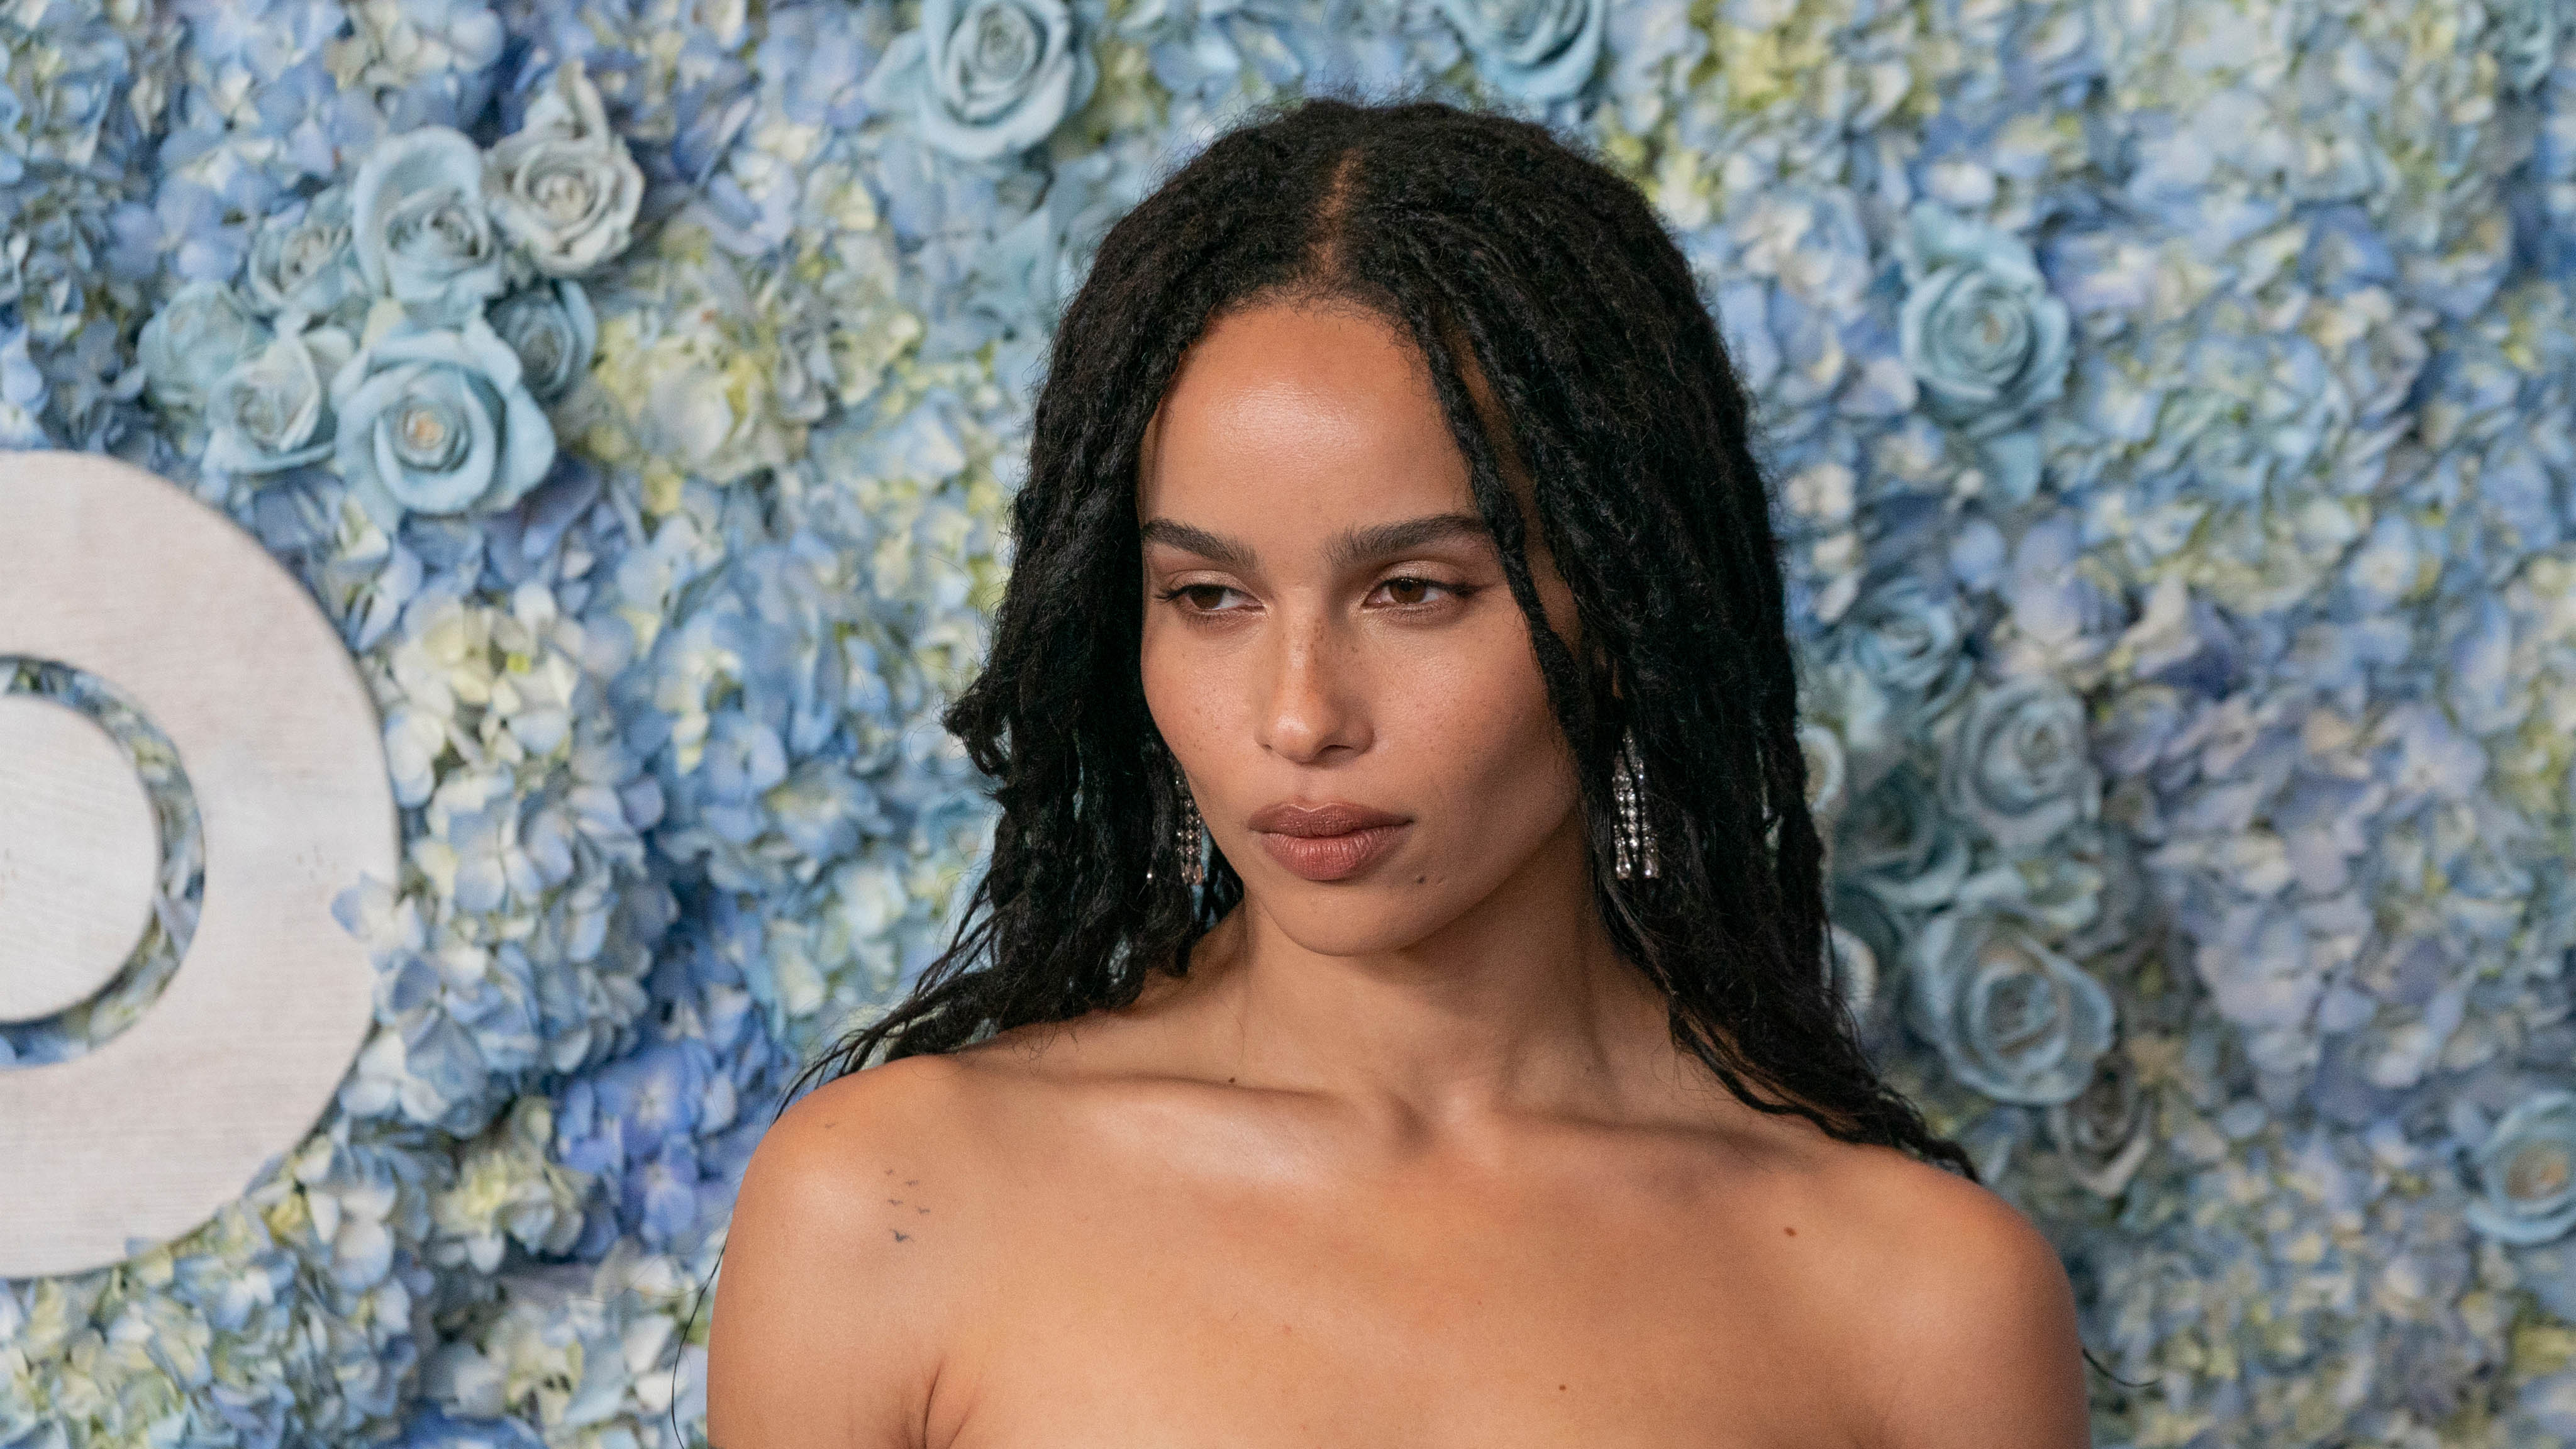 Zoë Kravitz to Star as Catwoman in Upcoming Batman Film